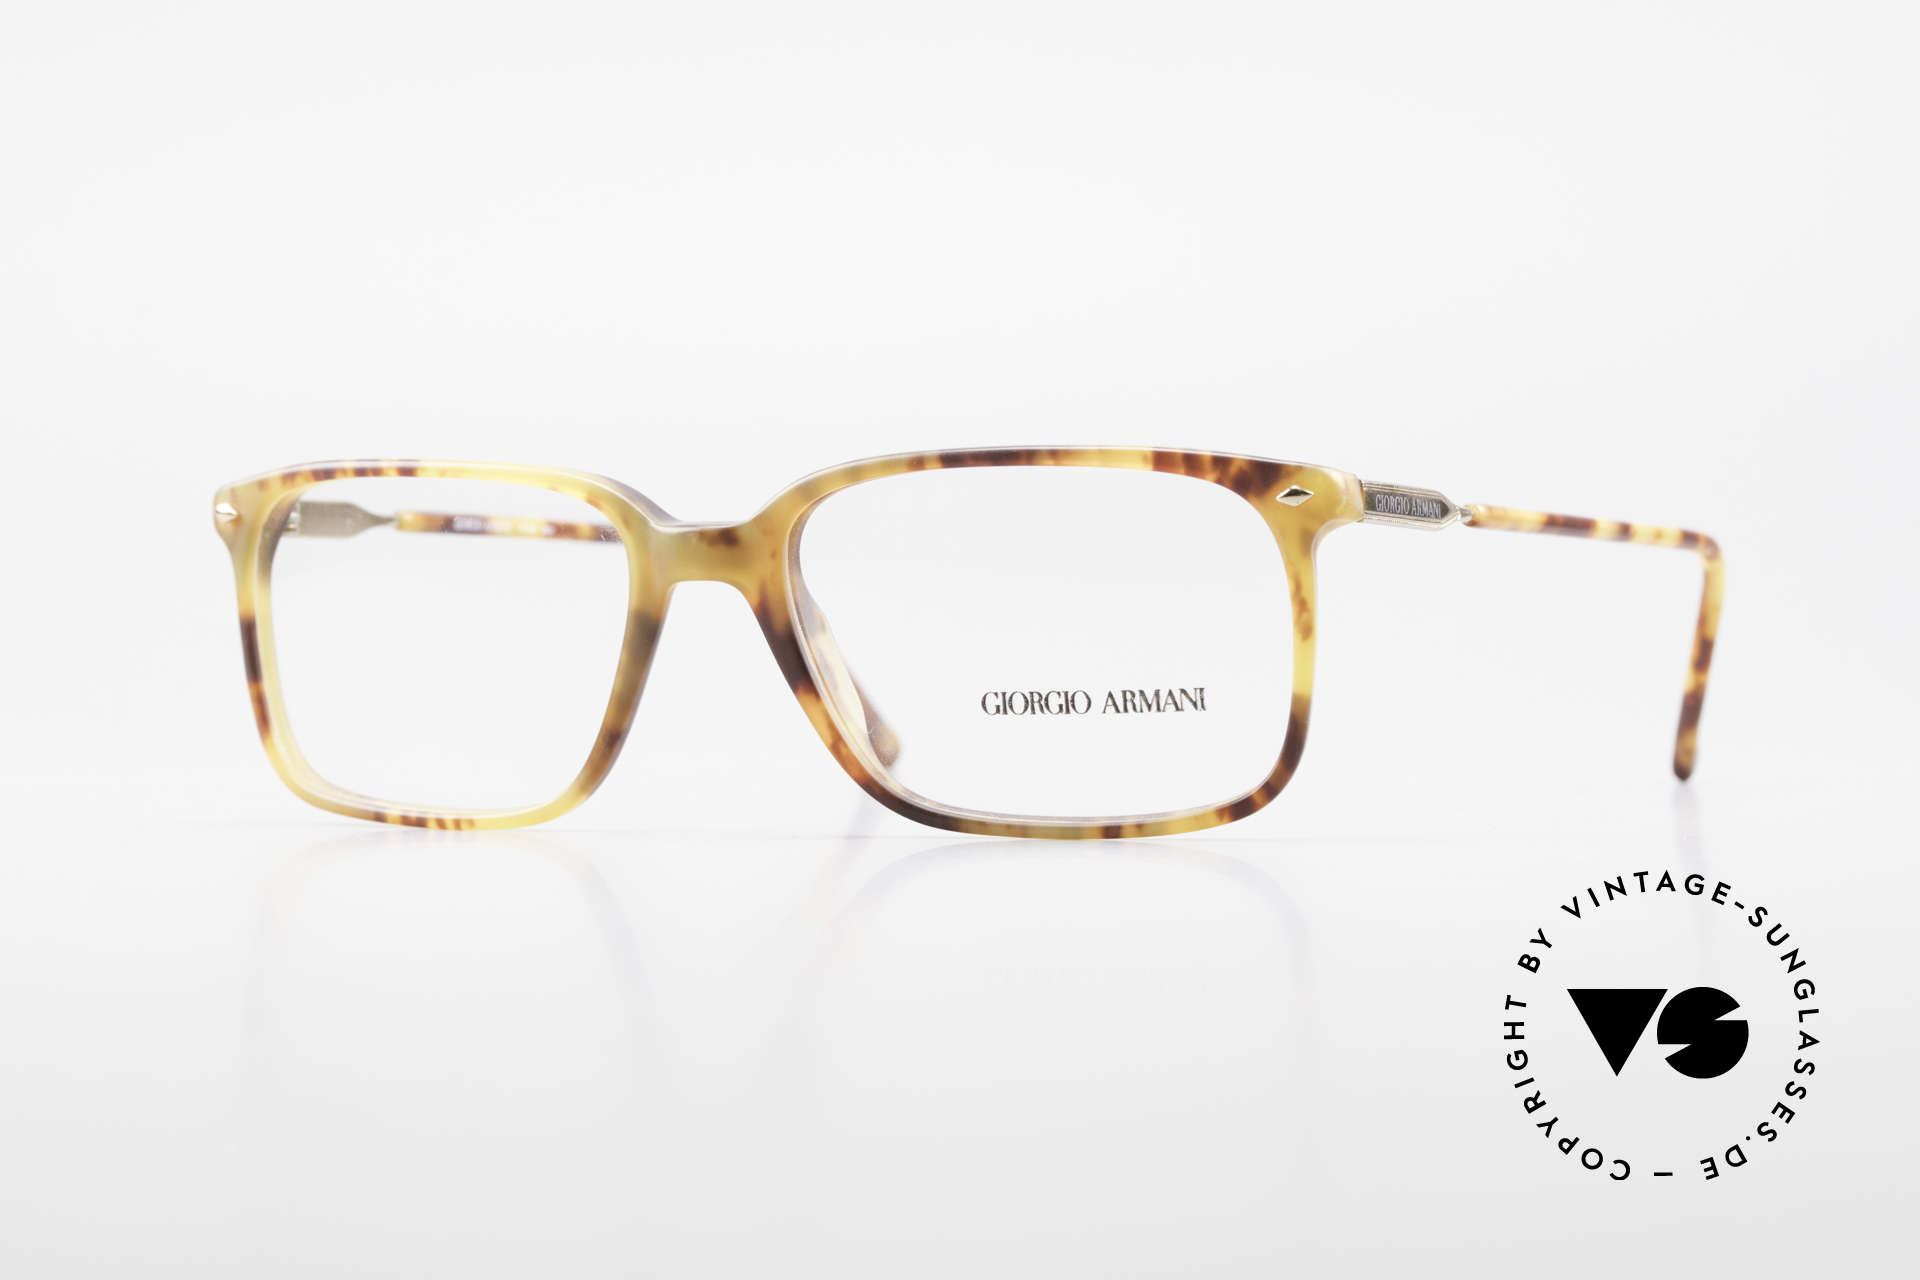 Giorgio Armani 332 True Vintage Eyeglass Frame, true vintage eyeglass-frame by GIORGIO ARMANI, Made for Men